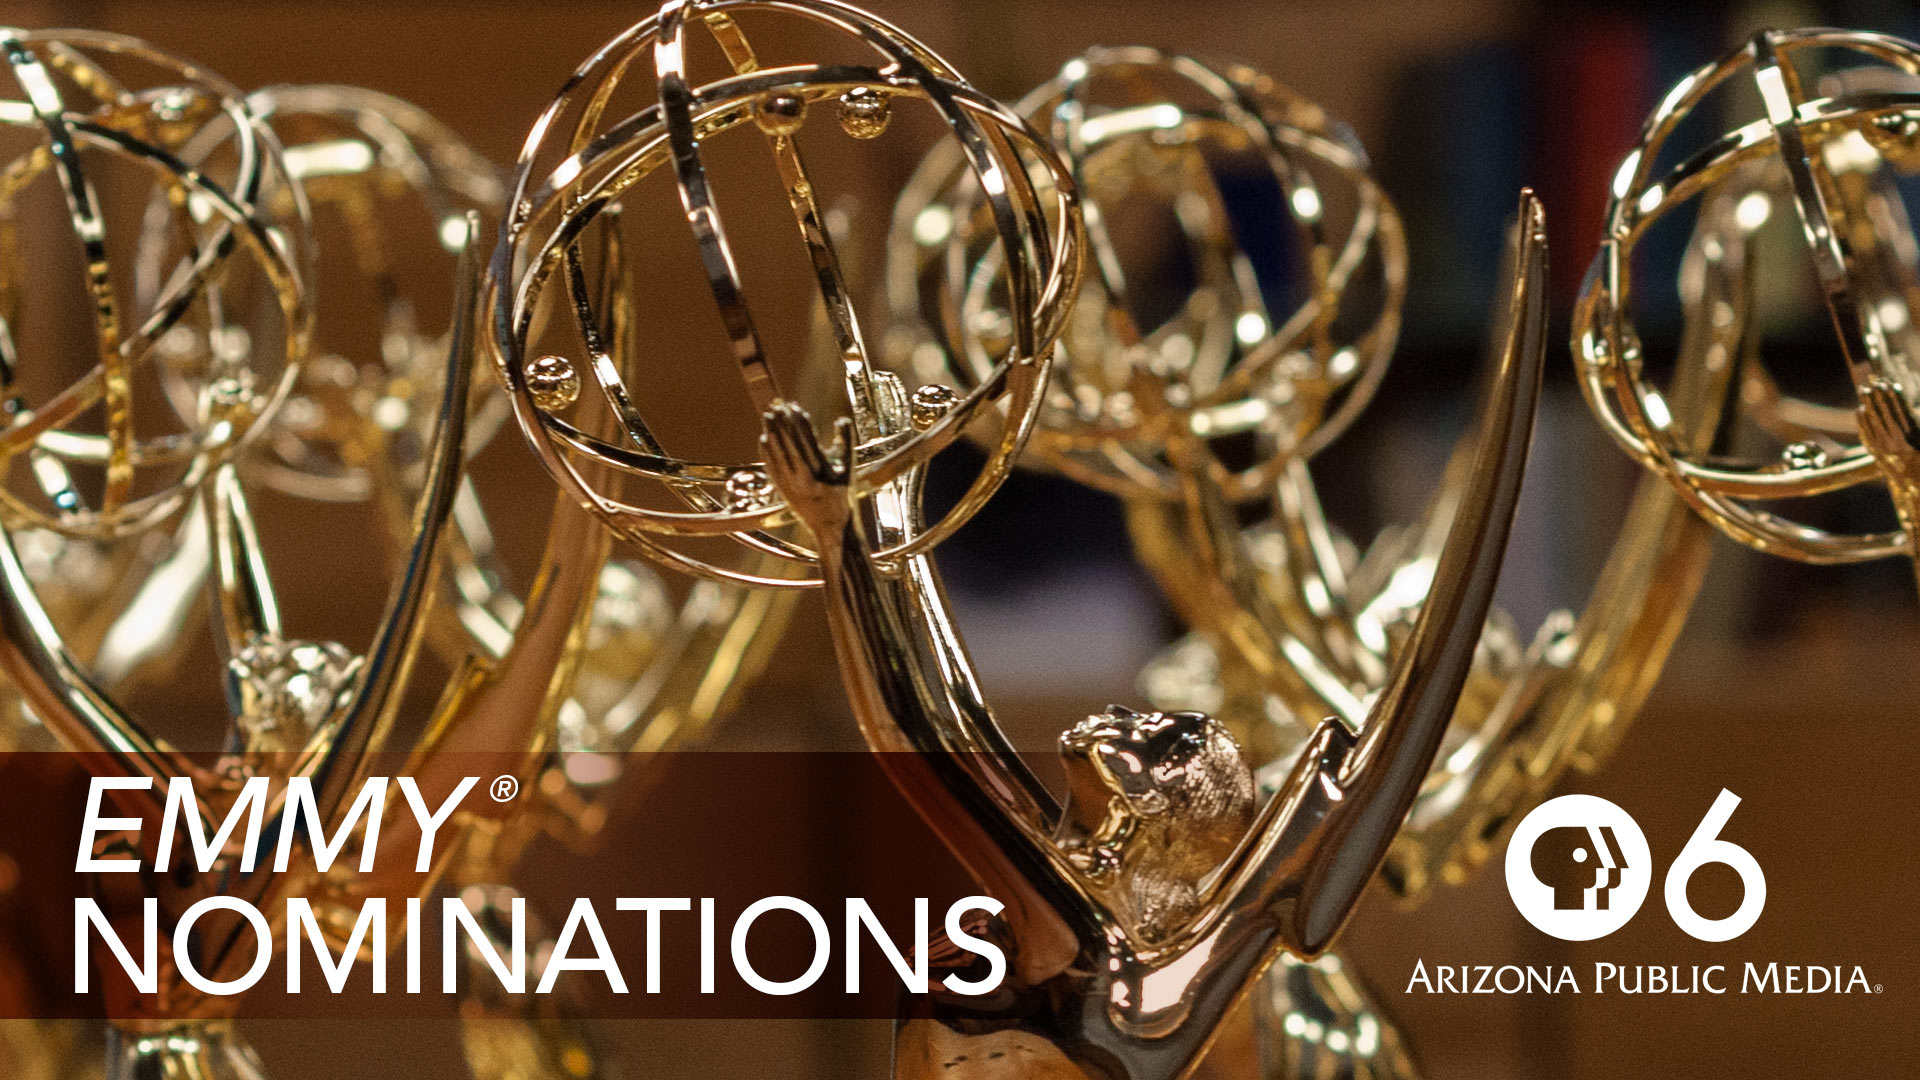 Emmy Nominations for AZPM